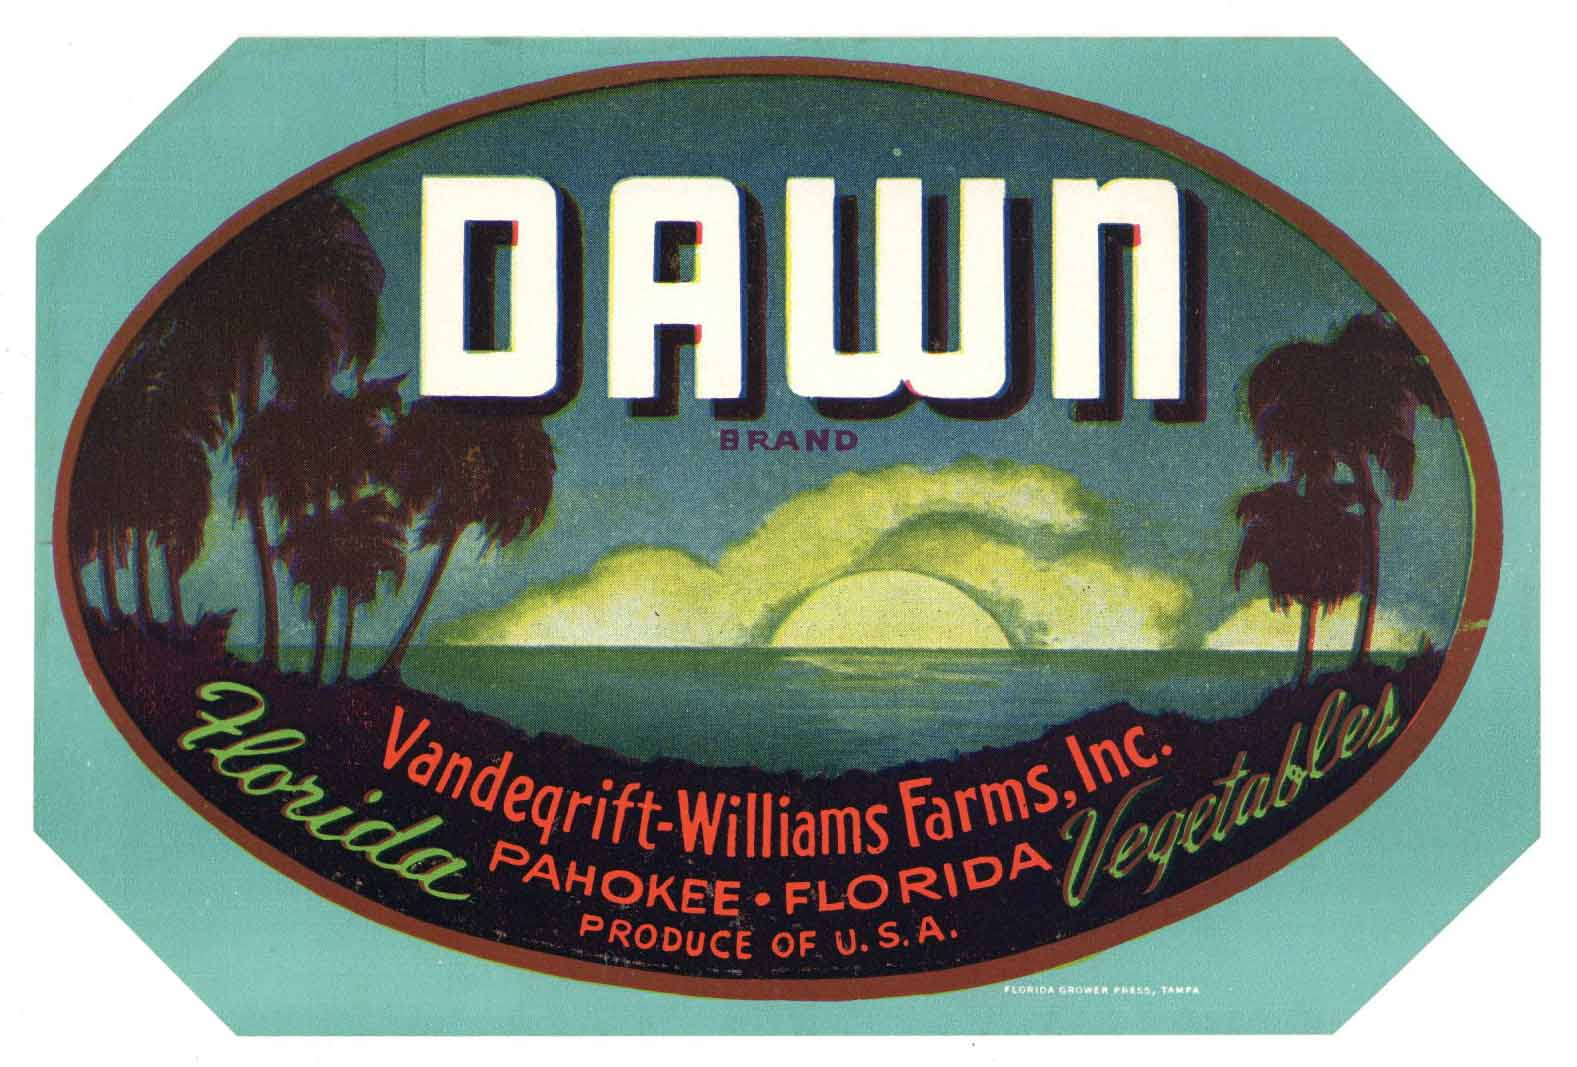 Dawn Brand Vintage Pahokee Florida Vegetable Crate Label